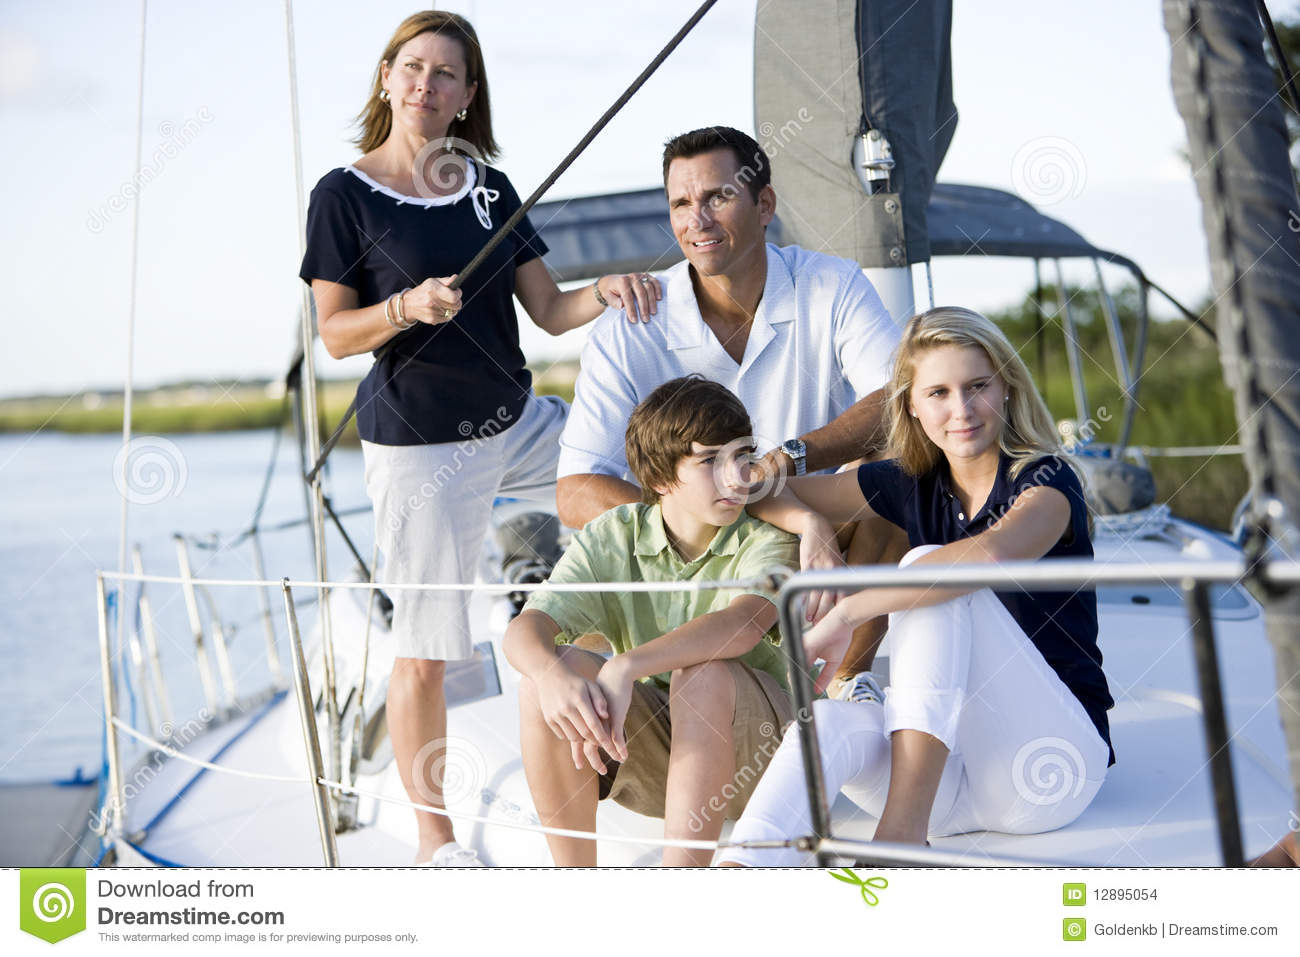 Family with teenagers relaxing together on boat